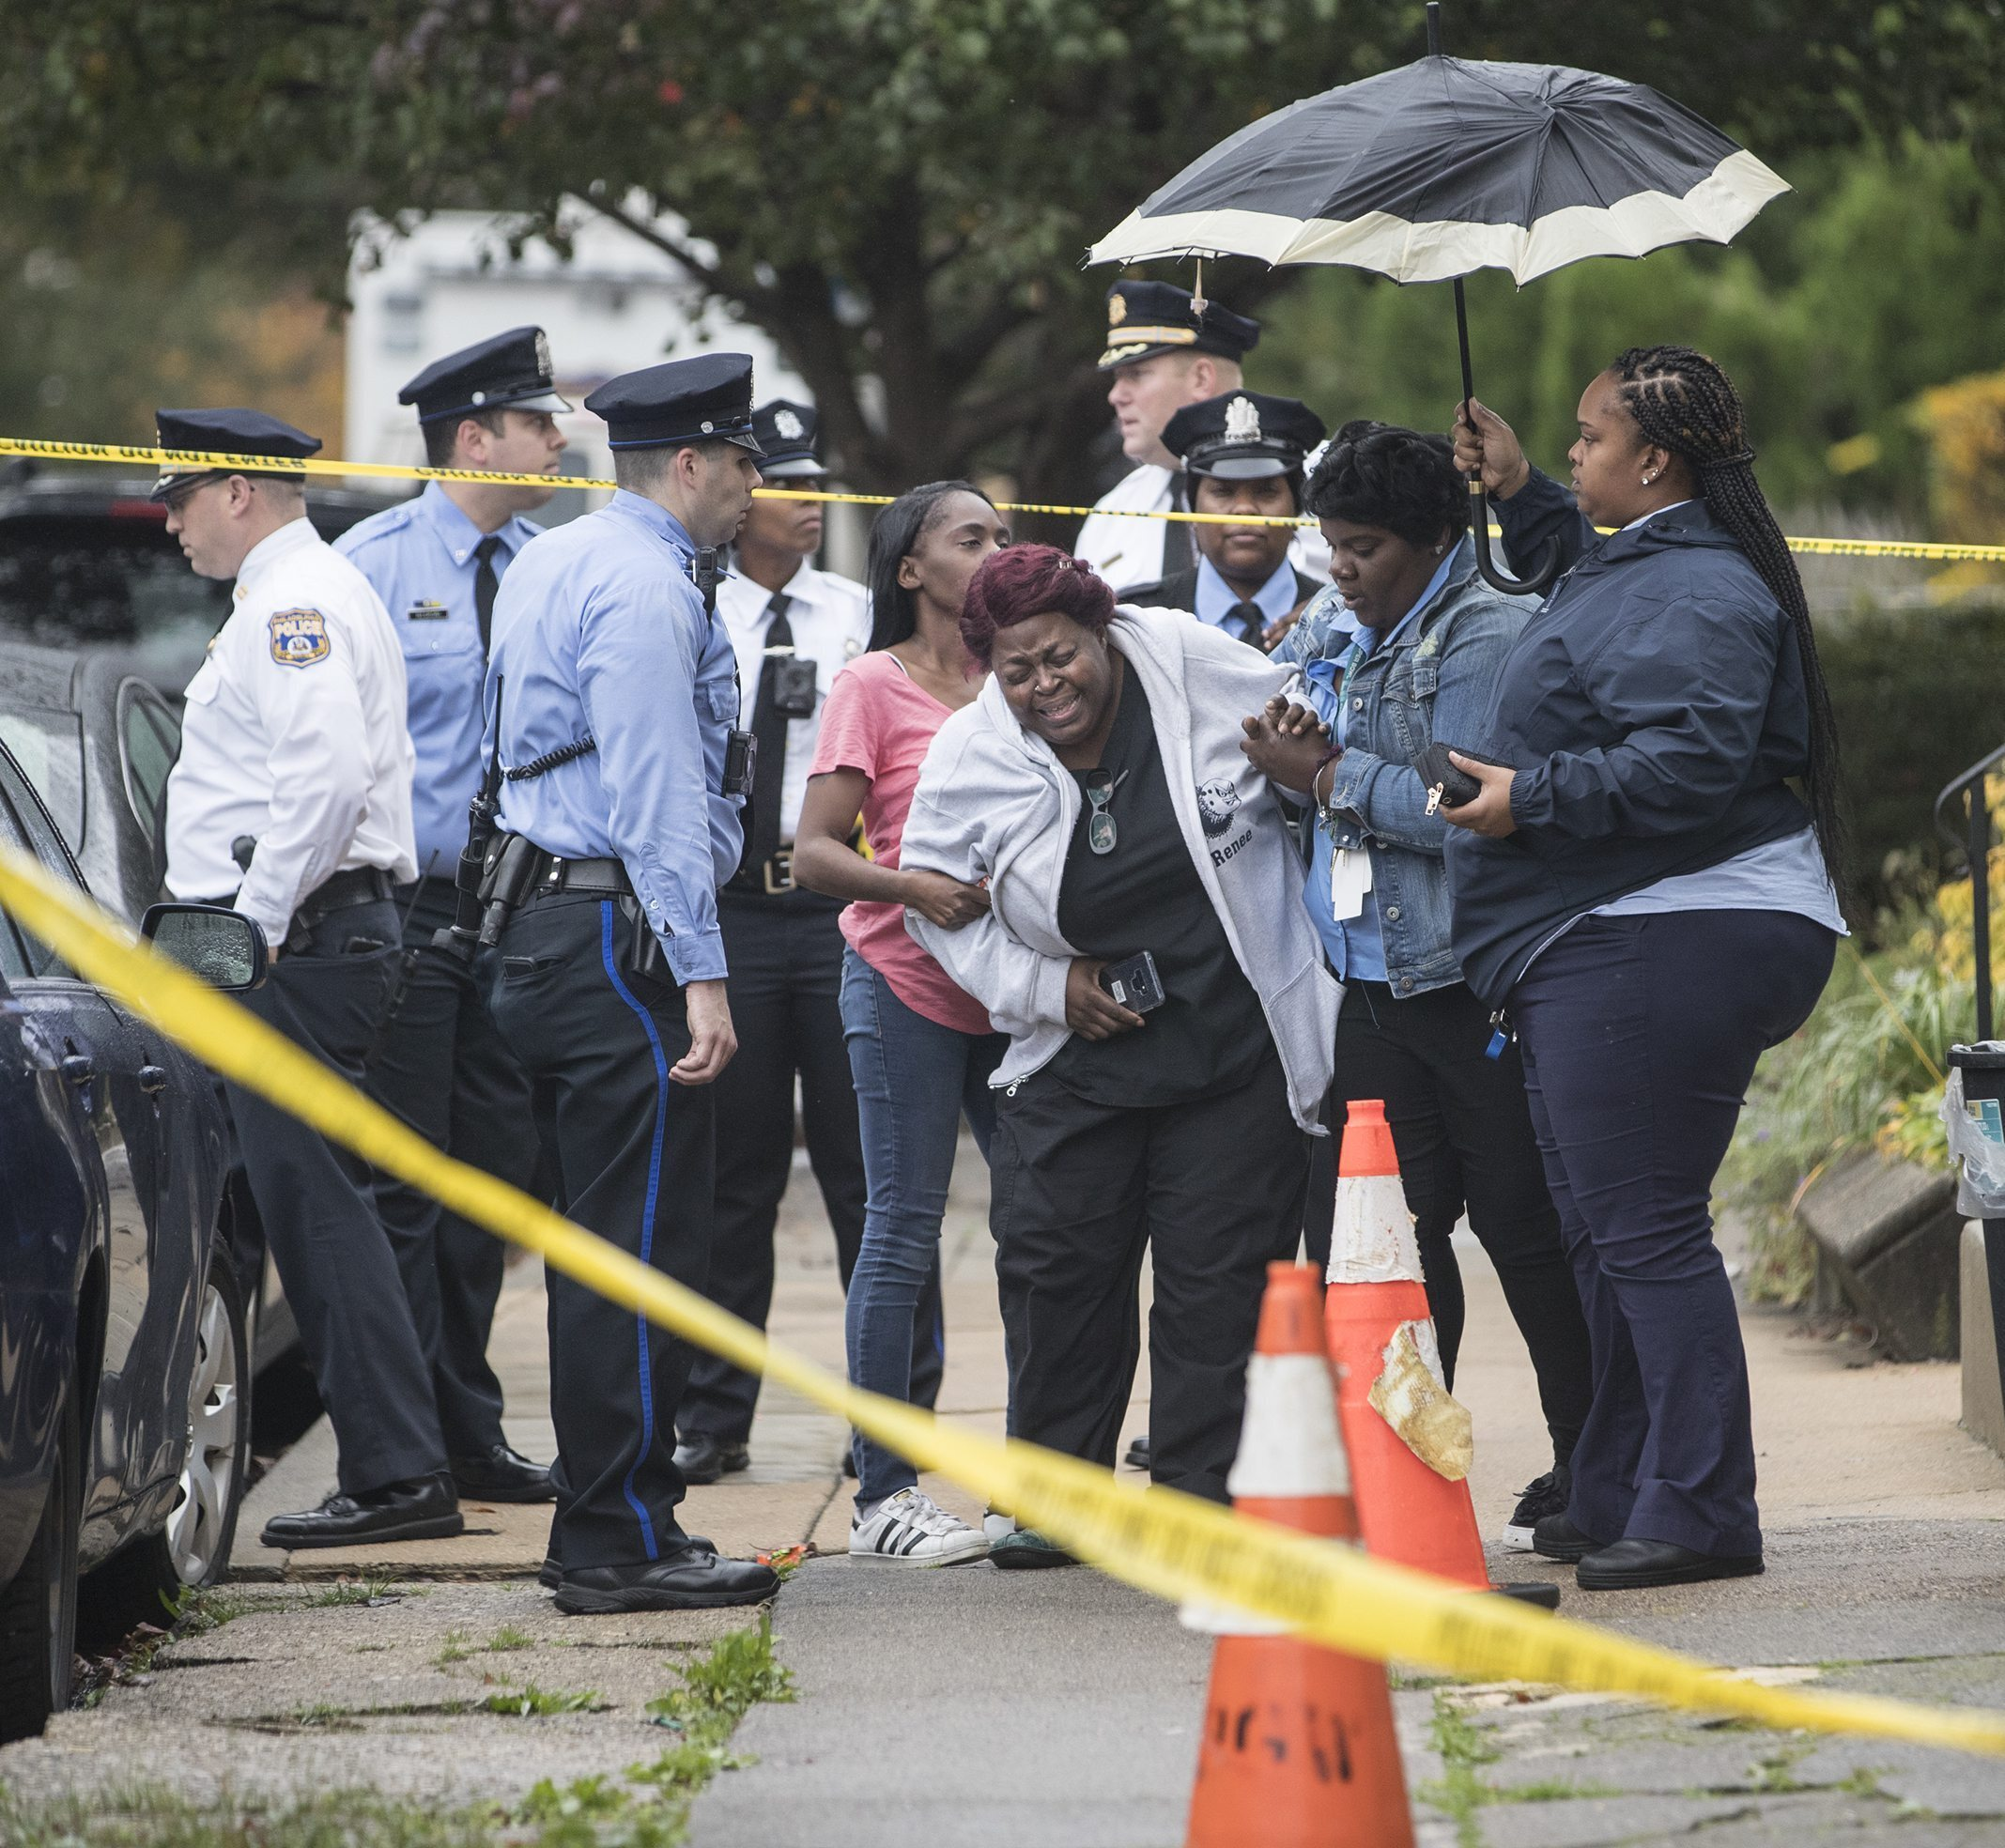 A grieving woman is assisted outside a home where four people were found shot dead on Oct. 30, 2019, in west Philadelphia.